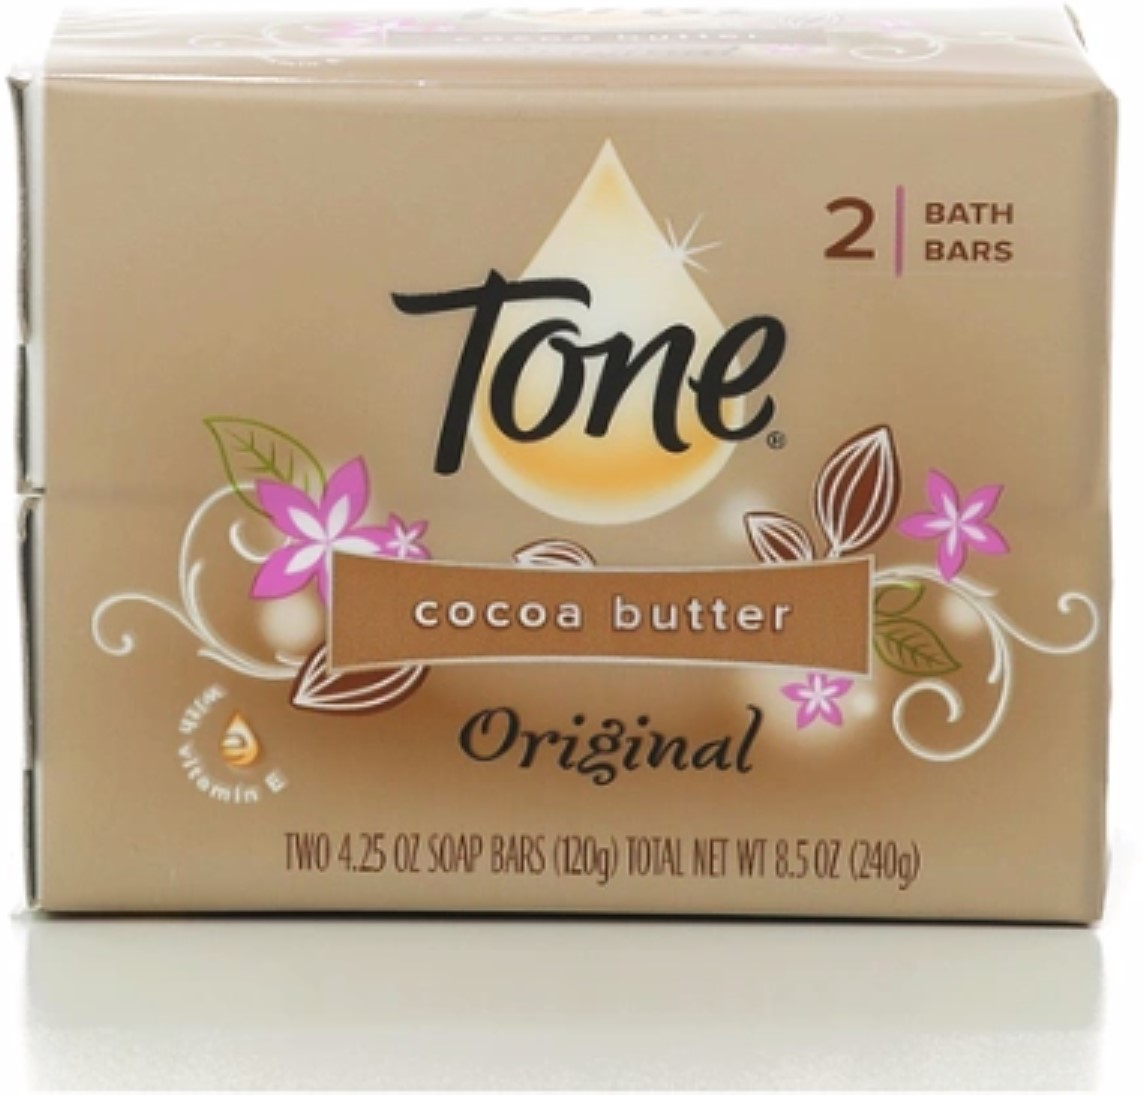 Tone Bath Bars, Cocoa Butter 4.25 oz bars, 2 ea (Pack of 2)